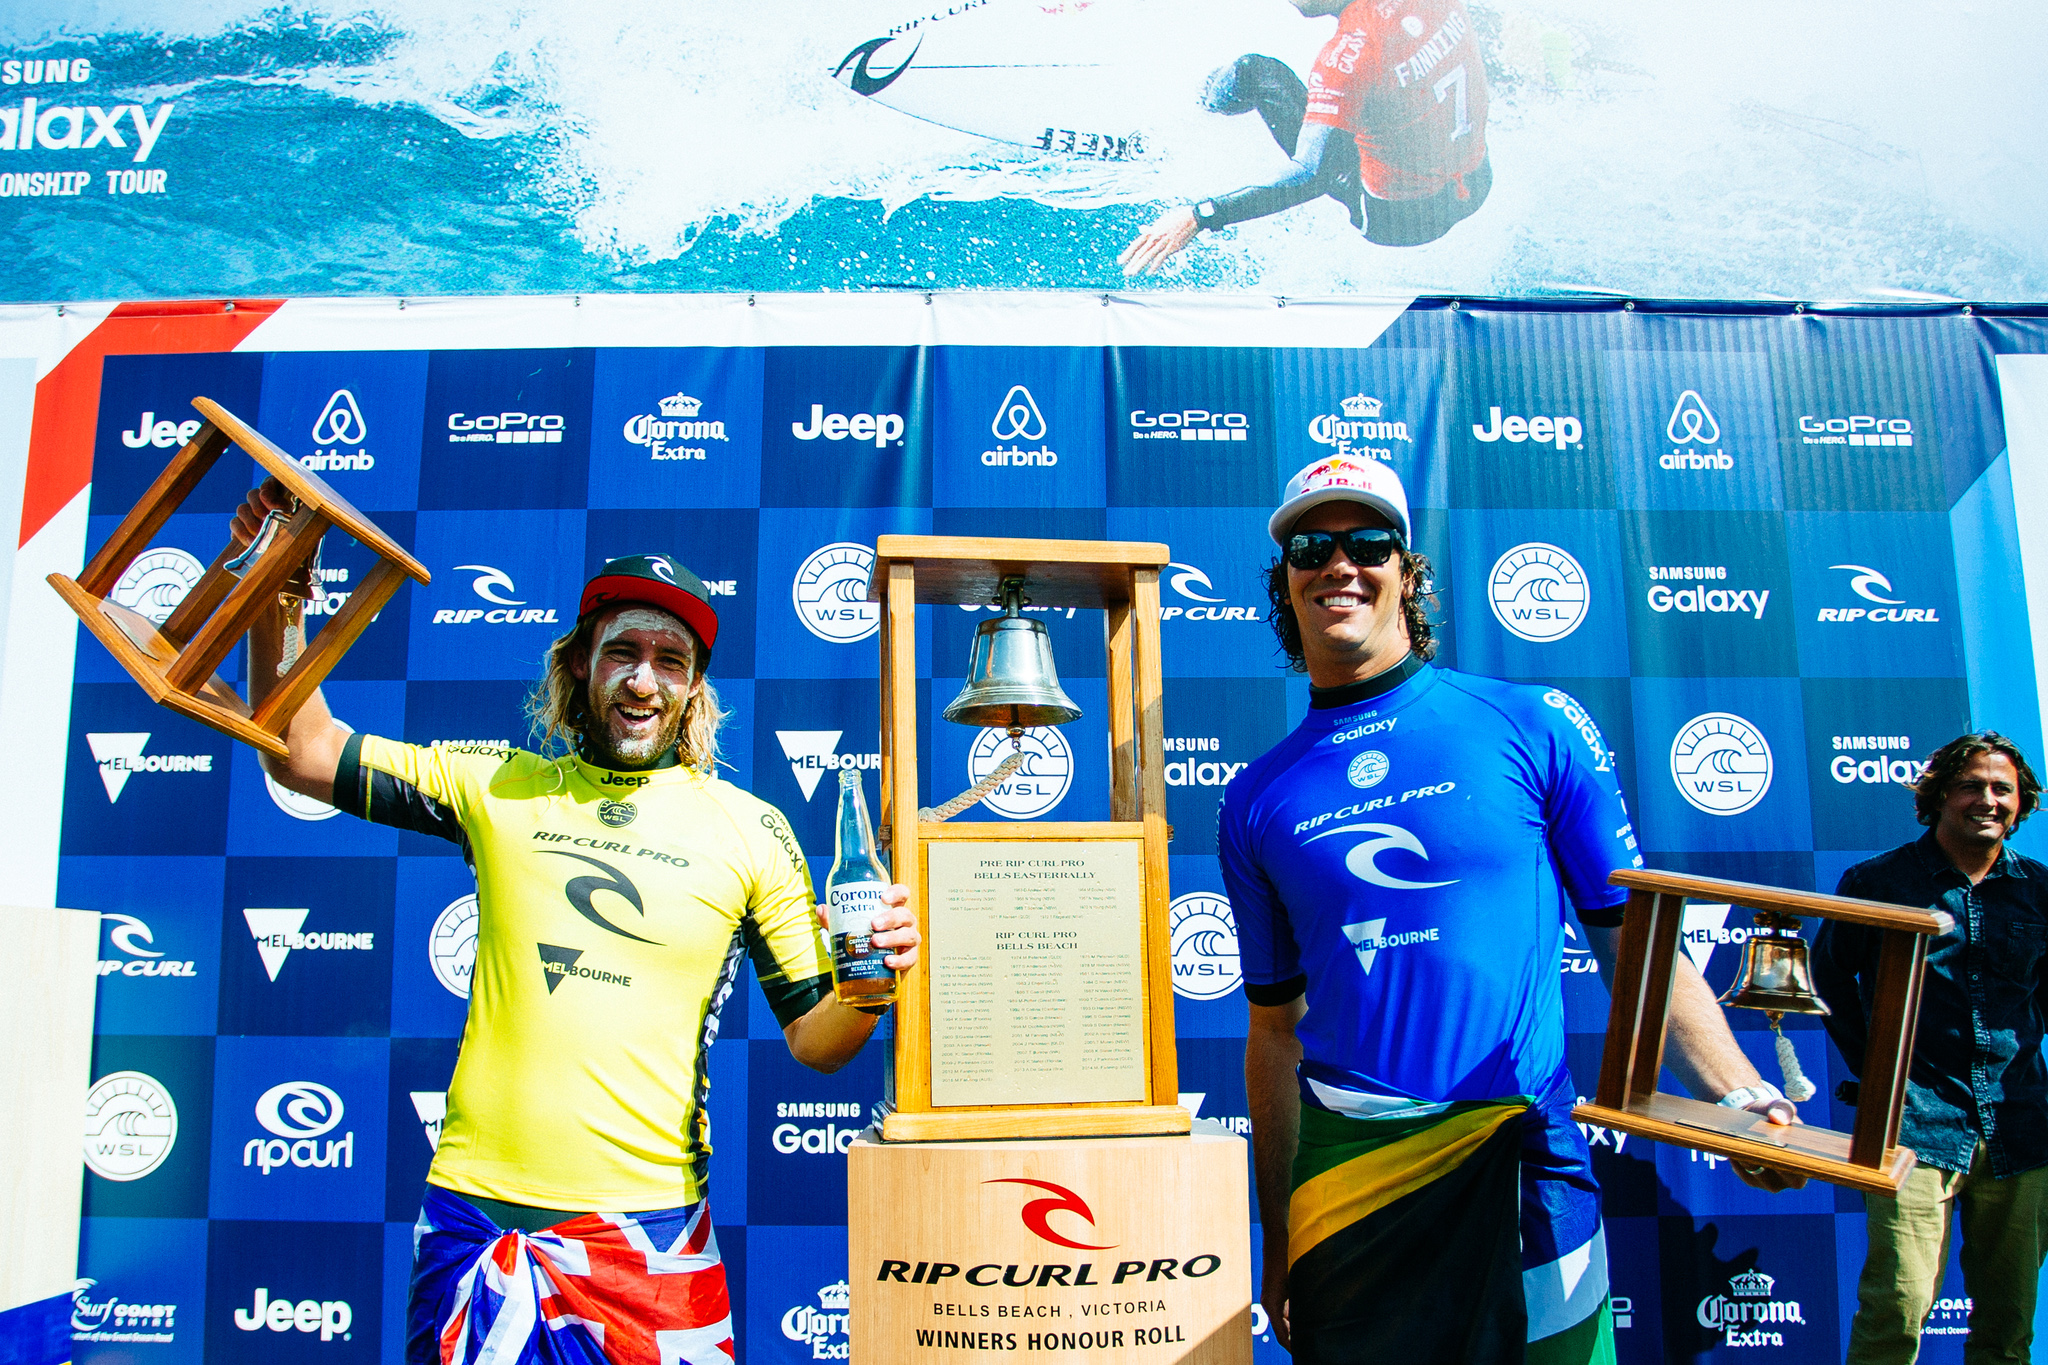 Rip Curl Pro Bells Beach champion Matt Wilkinson of Australia (pictured yellow) and runner up Jordy Smith of South Africa (blue) celebrate during prizegiving at the Rip Curl Pro Bells Beach on Sunday April 3, 2016. Matt Wilkinson of Australia (pictured) hoists his bell after winning the Rip Curl Pro Bells Beach on Sunday April 3, 2016. PHOTO: © WSL/ Sloane SOCIAL: @wsl @edsloanephoto This image is the copyright of the World Surf League and is provided royalty free for editorial use only, in all media now known or hereafter created. No commercial rights granted. Sale or license of the images is prohibited. This image is a factually accurate rendering of what it depicts and has not been modified or augmented except for standard cropping and toning. ALL RIGHTS RESERVED.